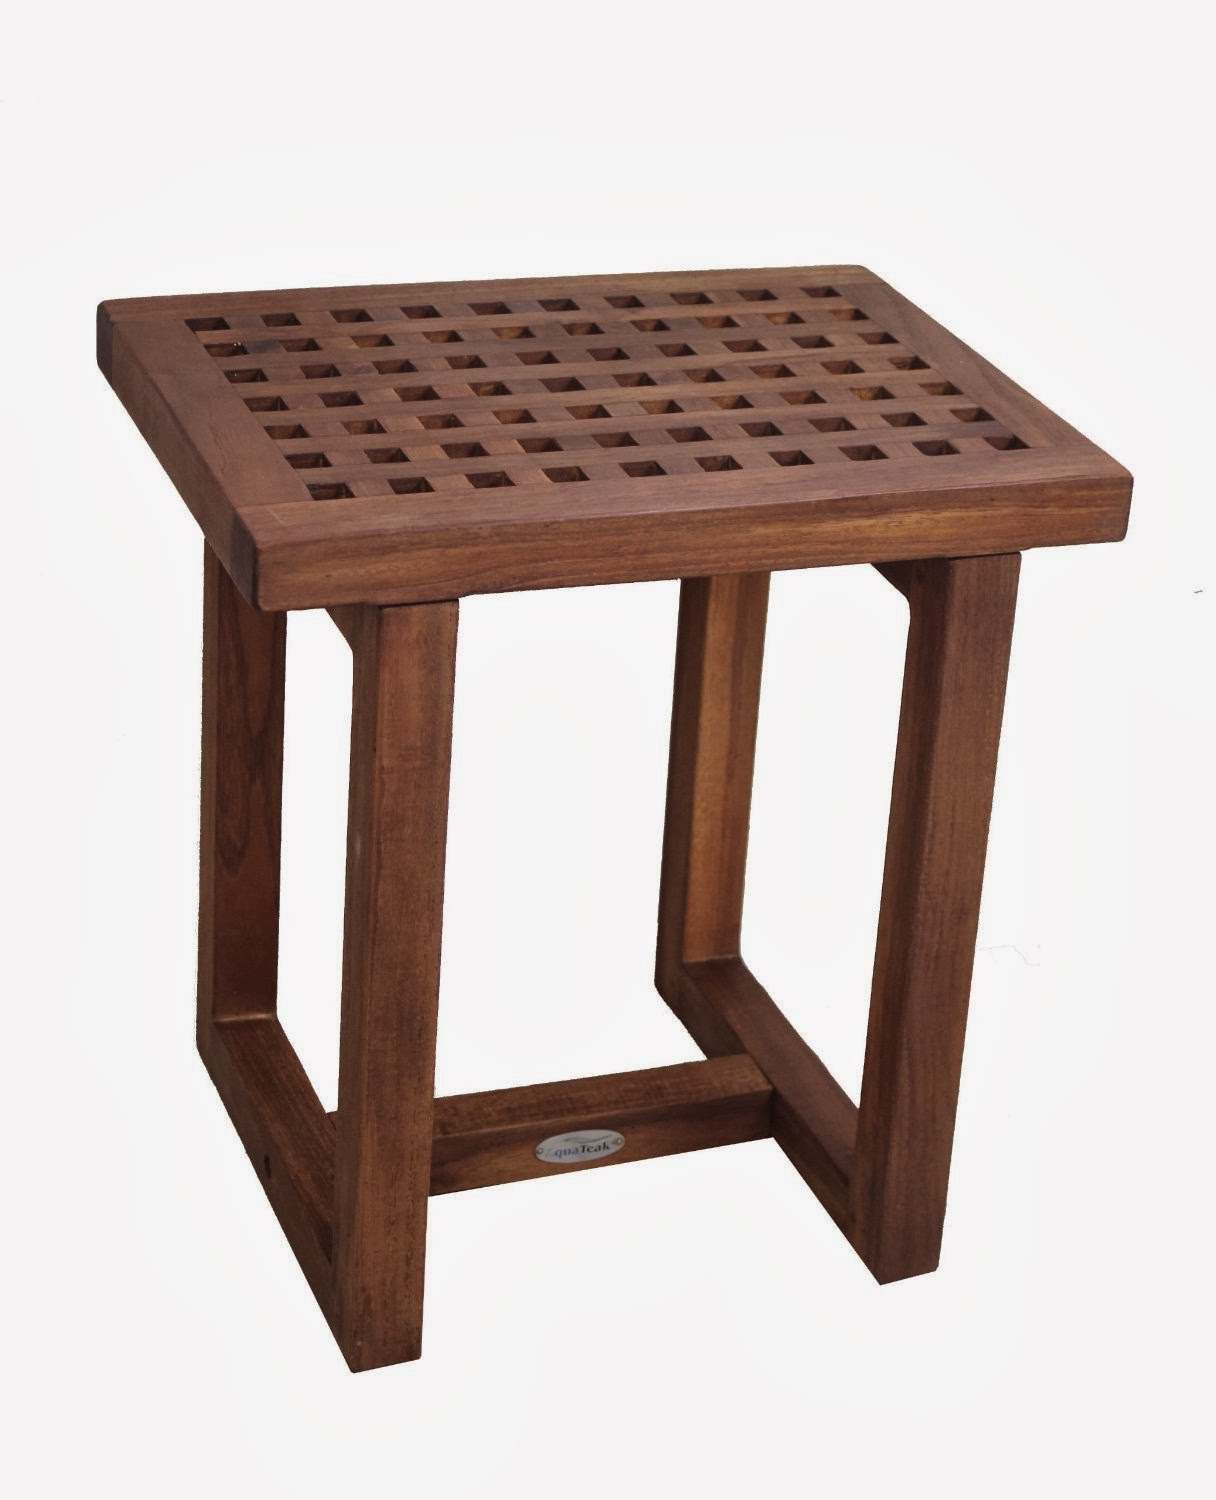 Teak Shower Bench Bing images